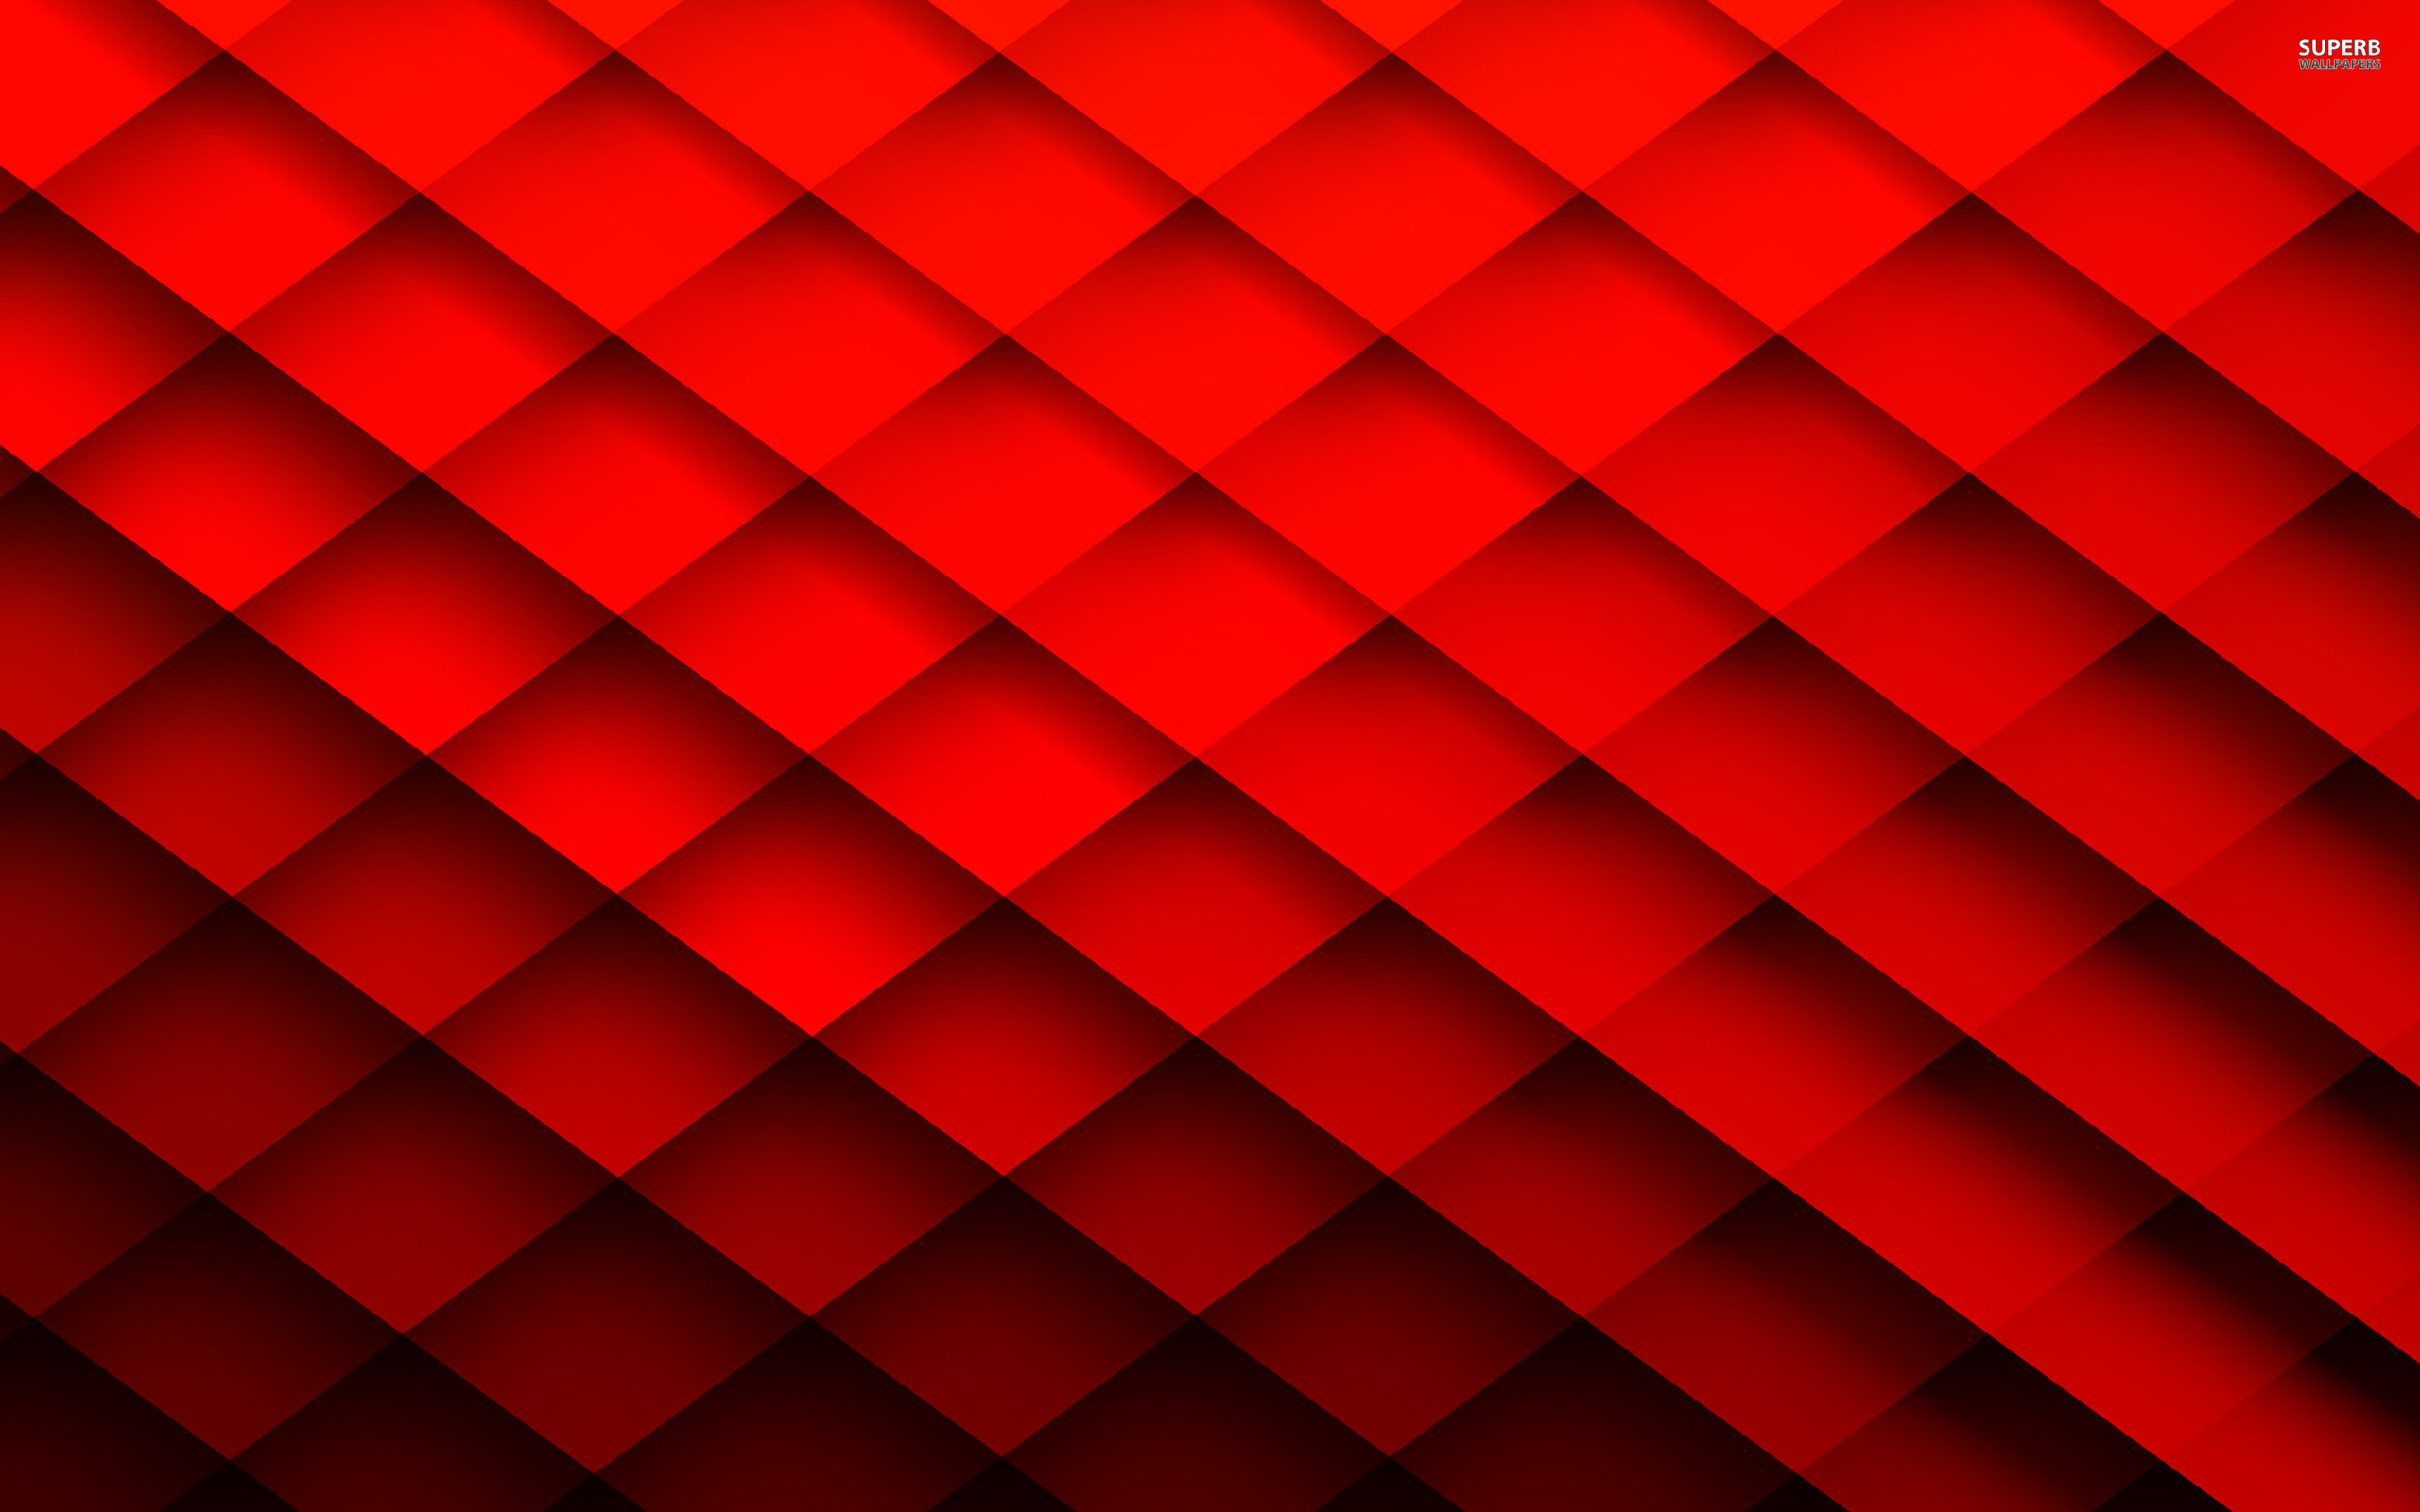 Red Wallpaper